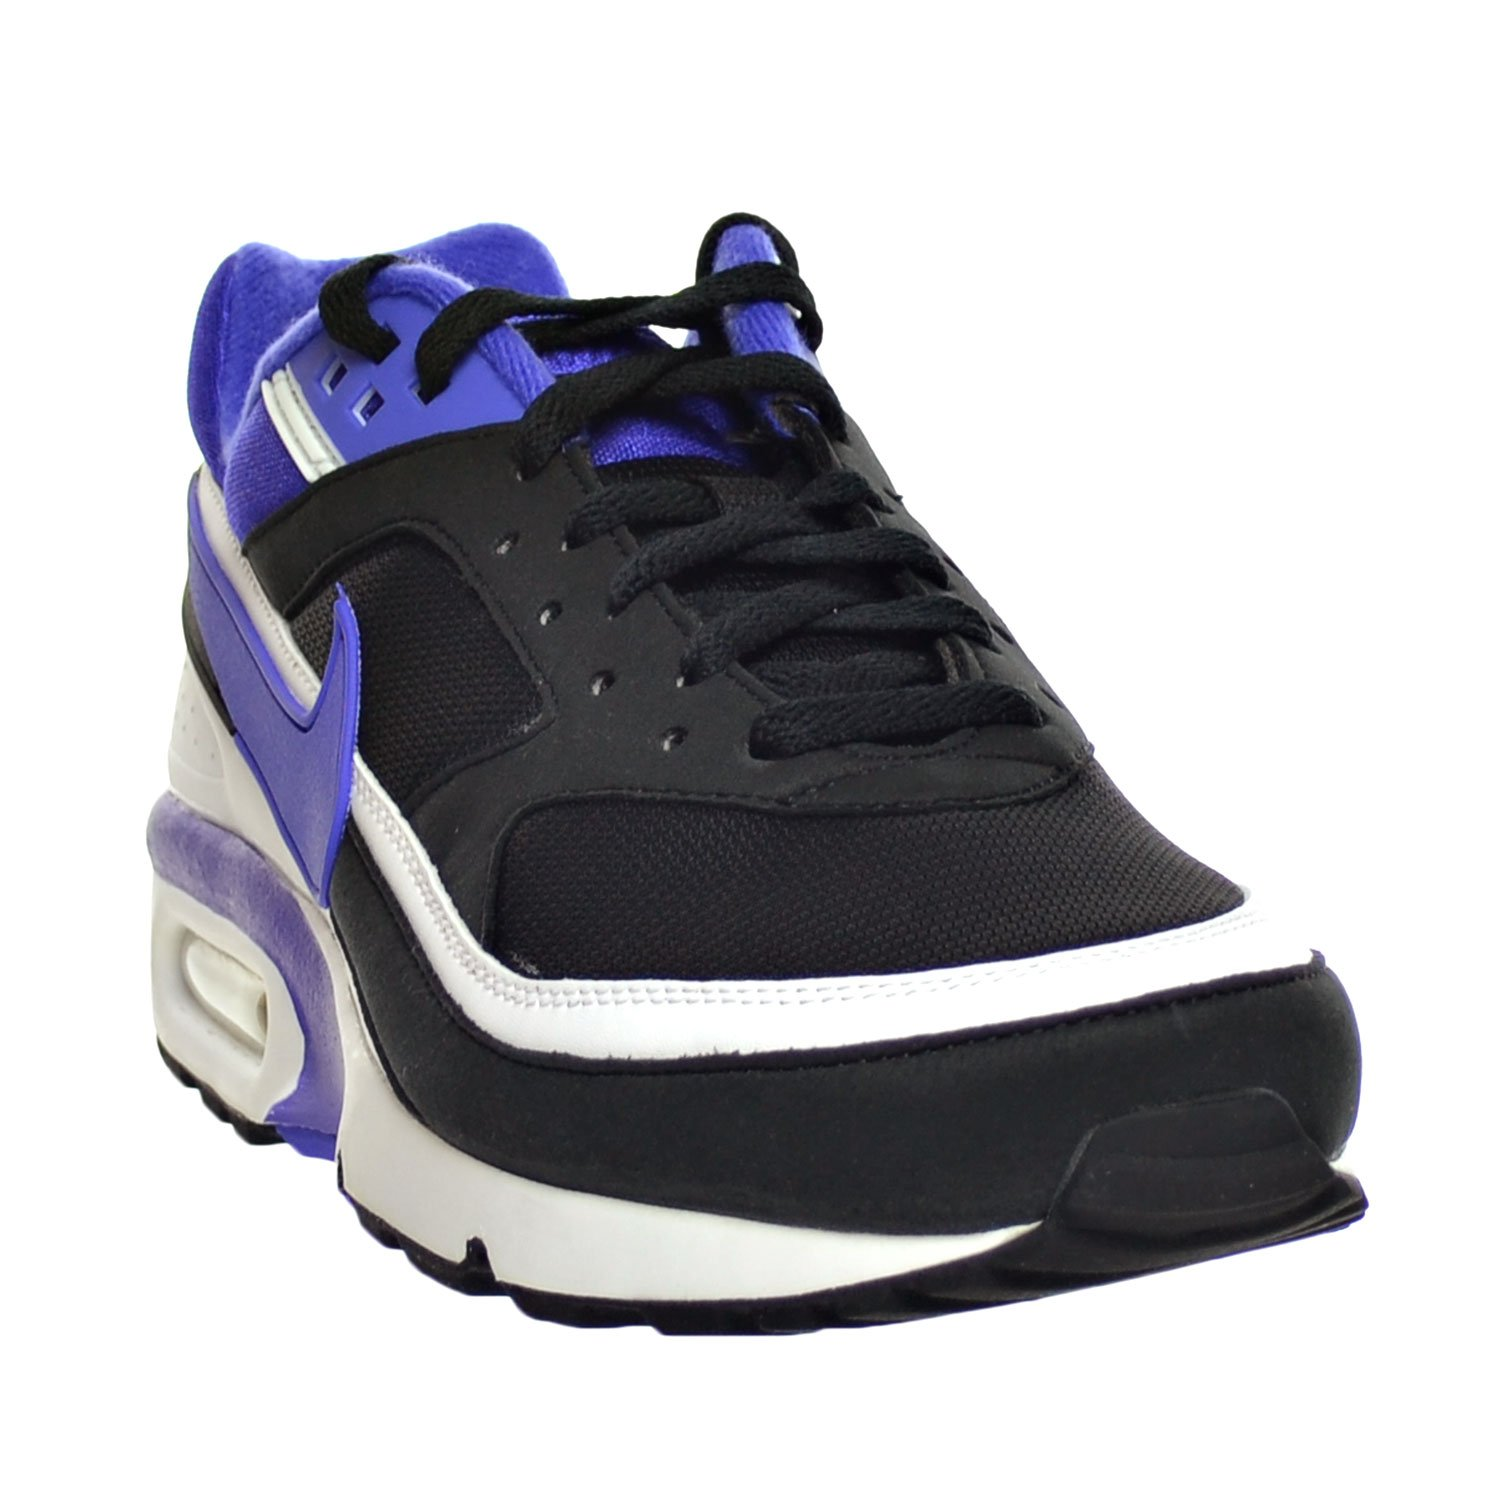 96c725bfd0063 Nike Air Max BW OG Men's Shoes Black/Persian Violet/White 819522-051